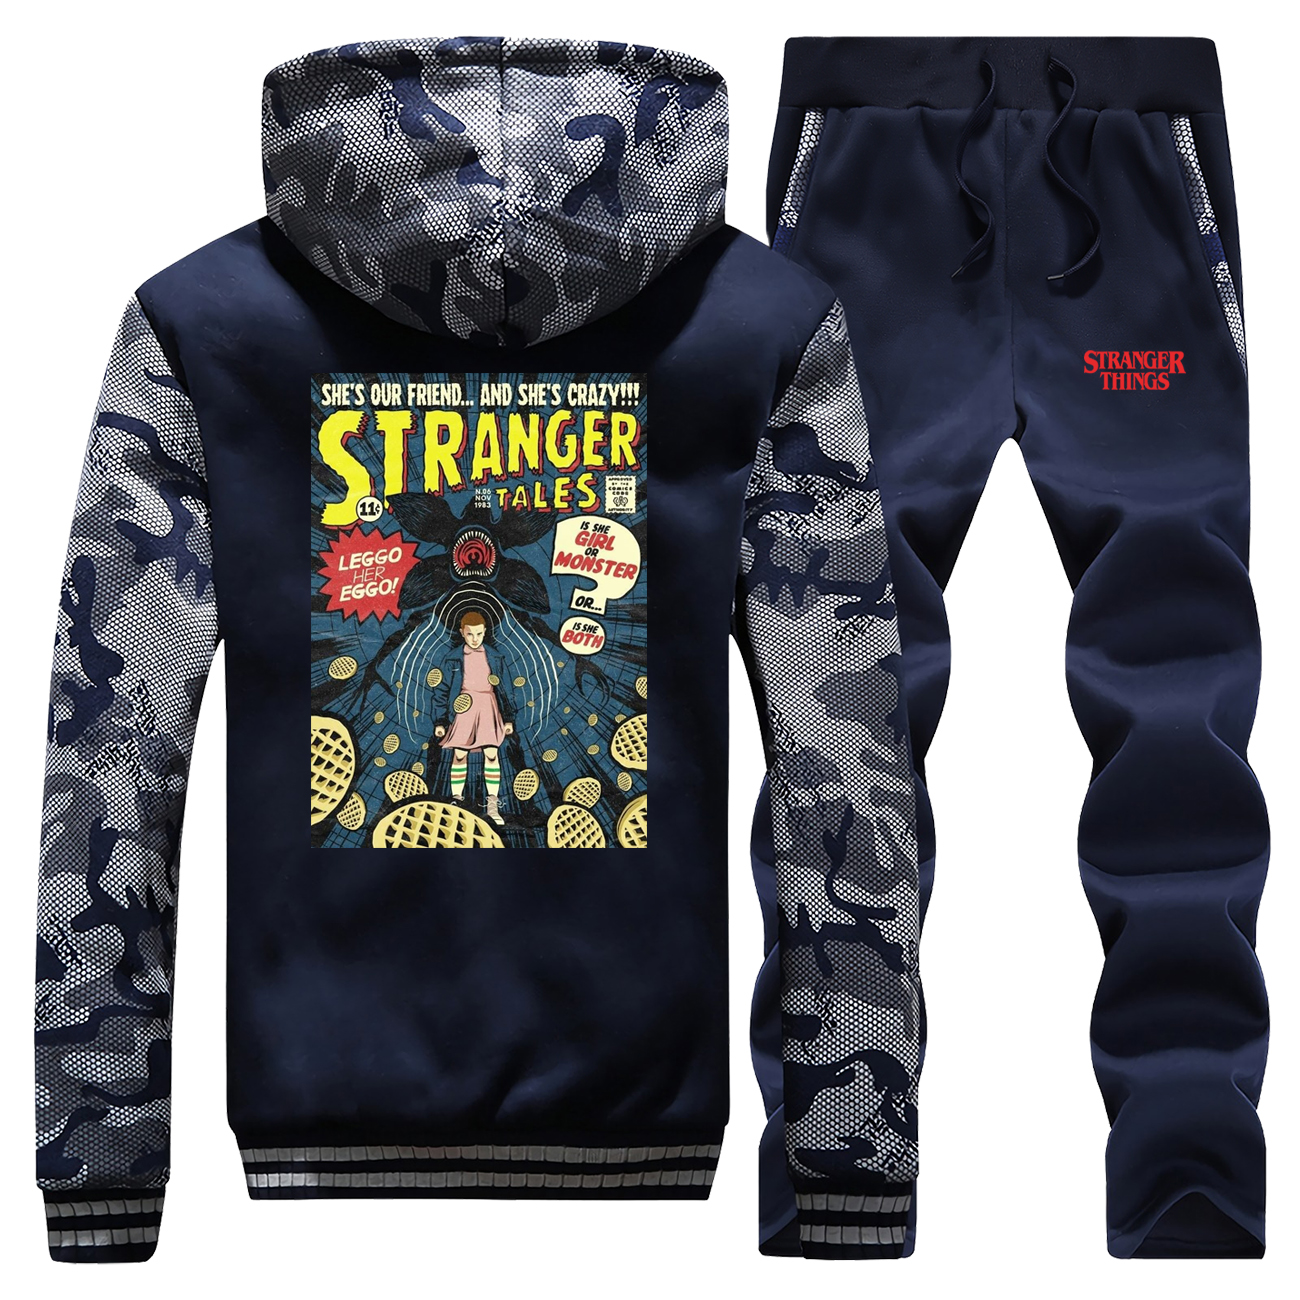 Stranger Things Winter Hot Sale 2019 Camouflage Hoodie Hip Hop Casual Coat Thick Suit Warm Jackets Sportswear+Pants 2Piece Set